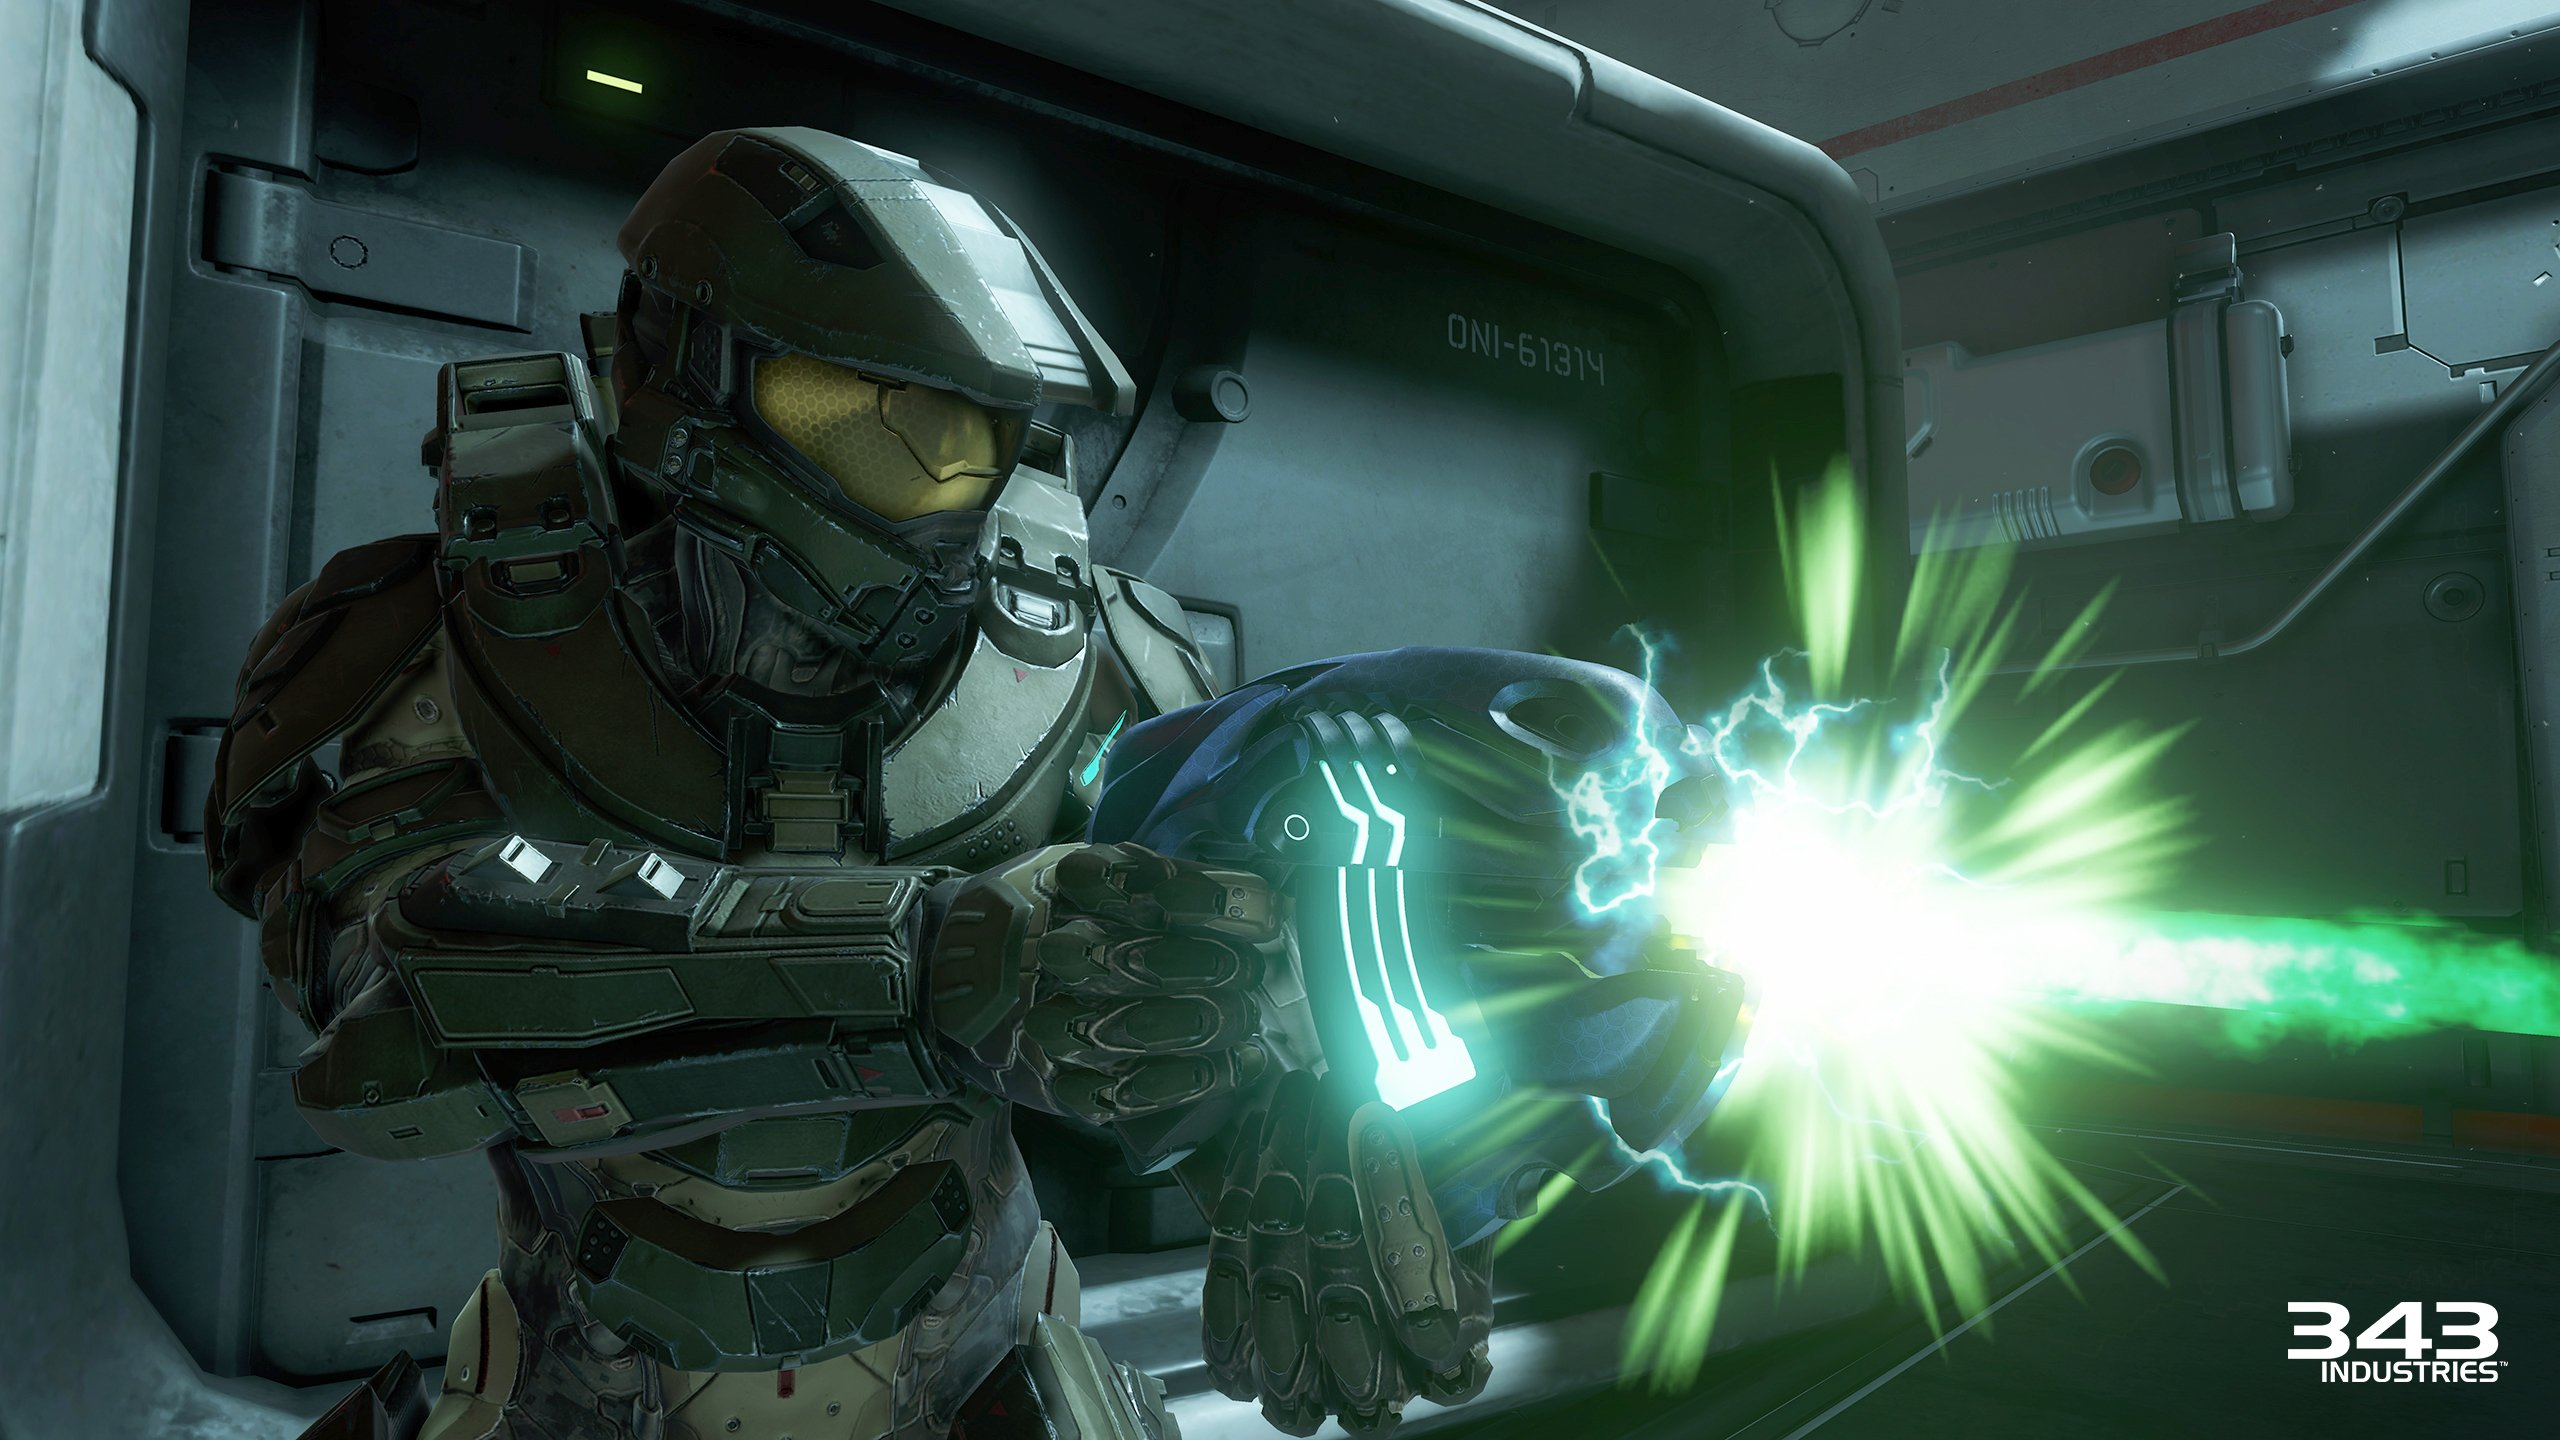 h5-guardians-blue-team-master-chief-hero-weapon-test-jpg1